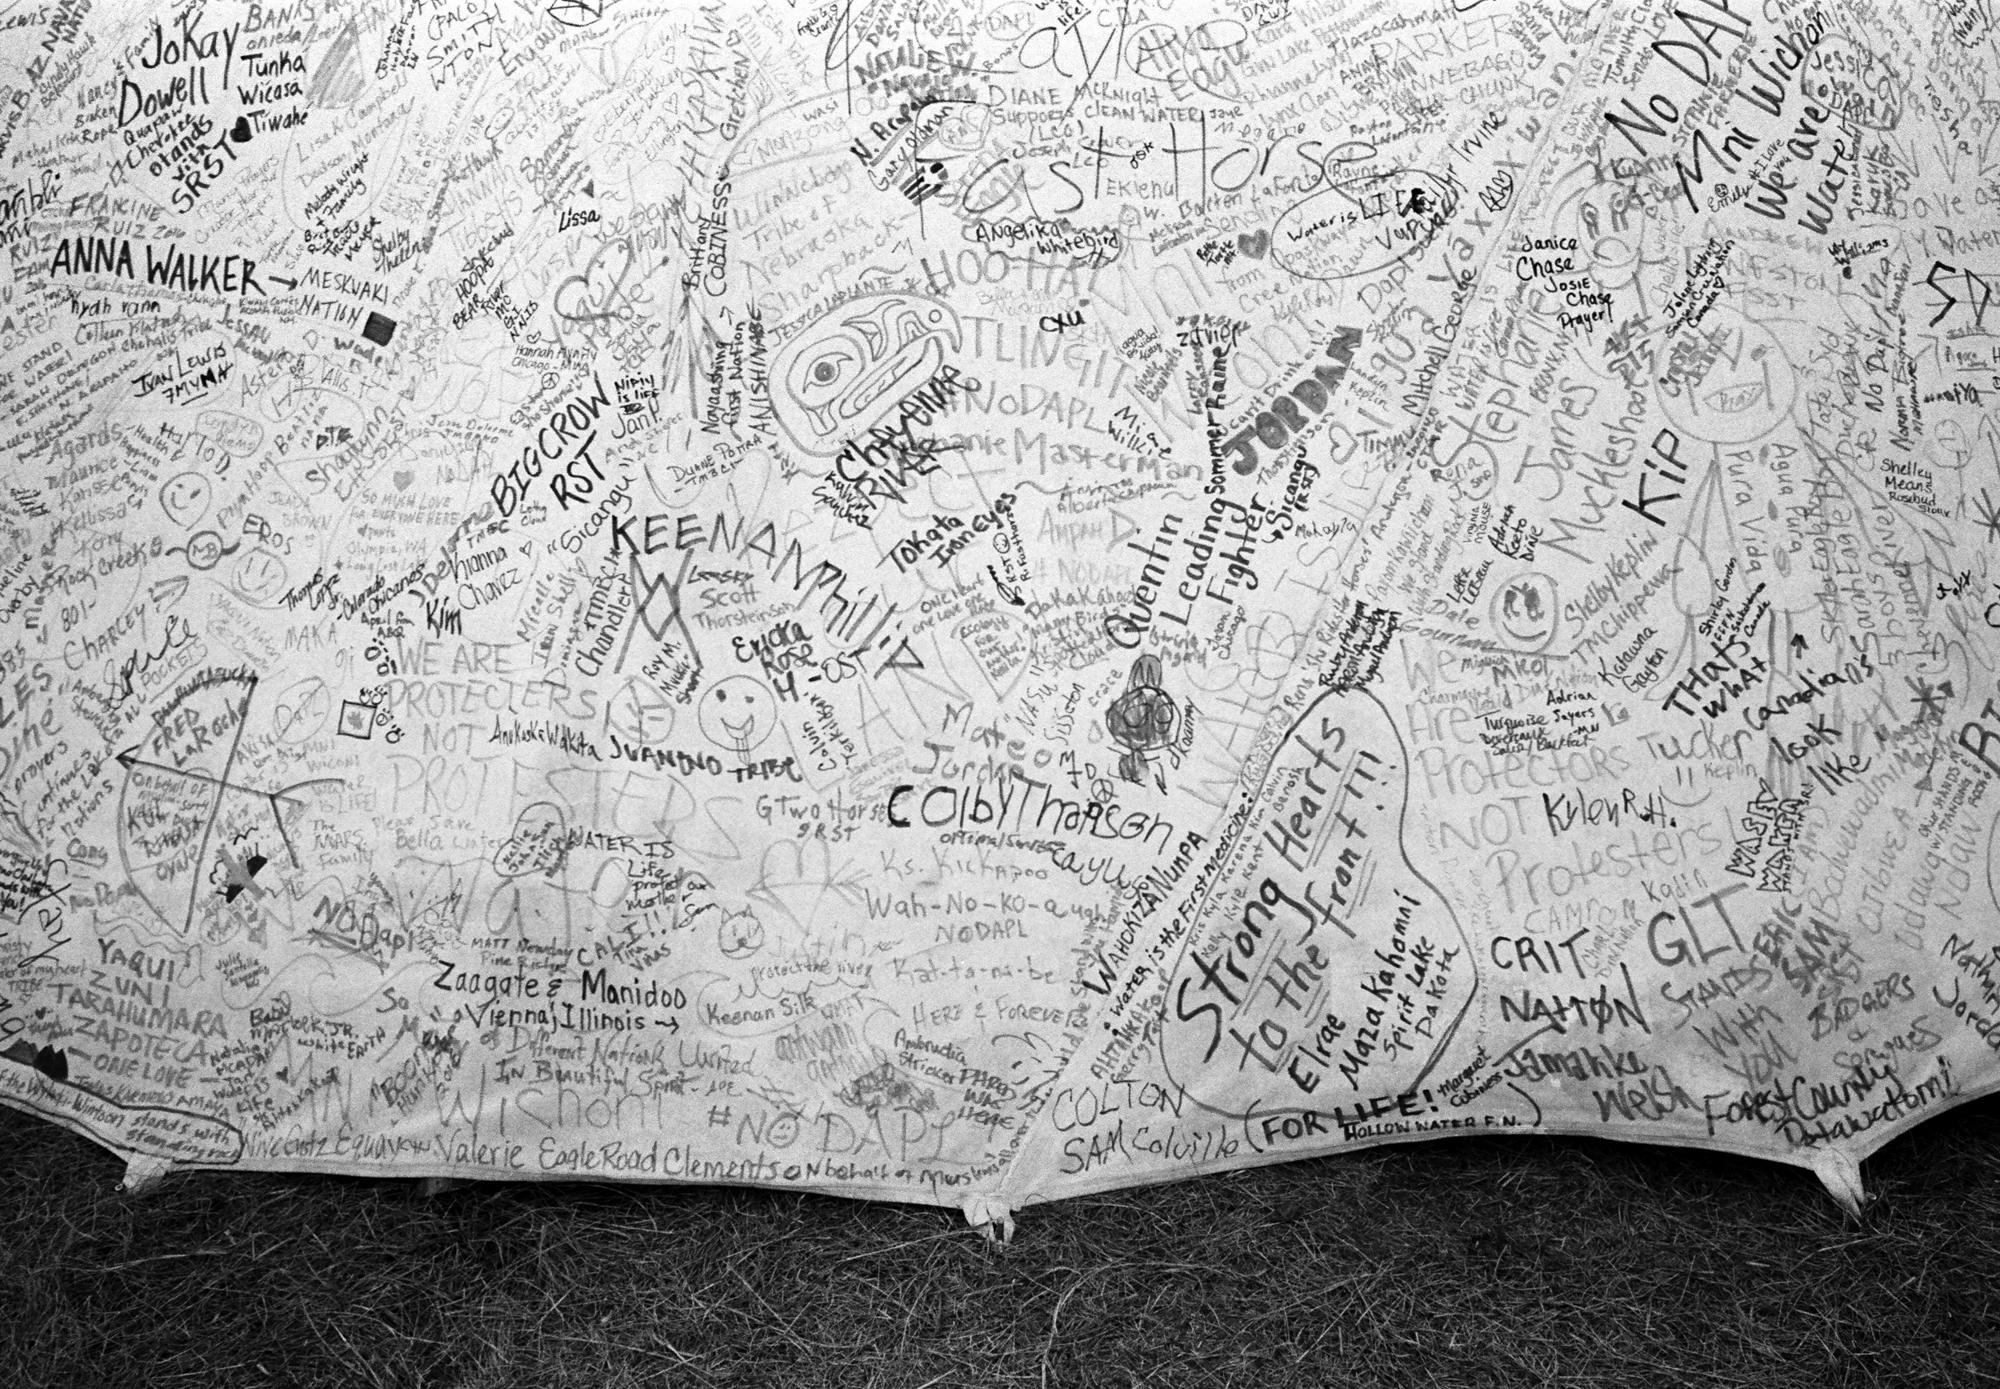 Detail of a tipi decorated with the messages of support from individuals and tribes around the world in the Oceti Sakowin camp of the Standing Rock Sioux Tribe in North Dakota.